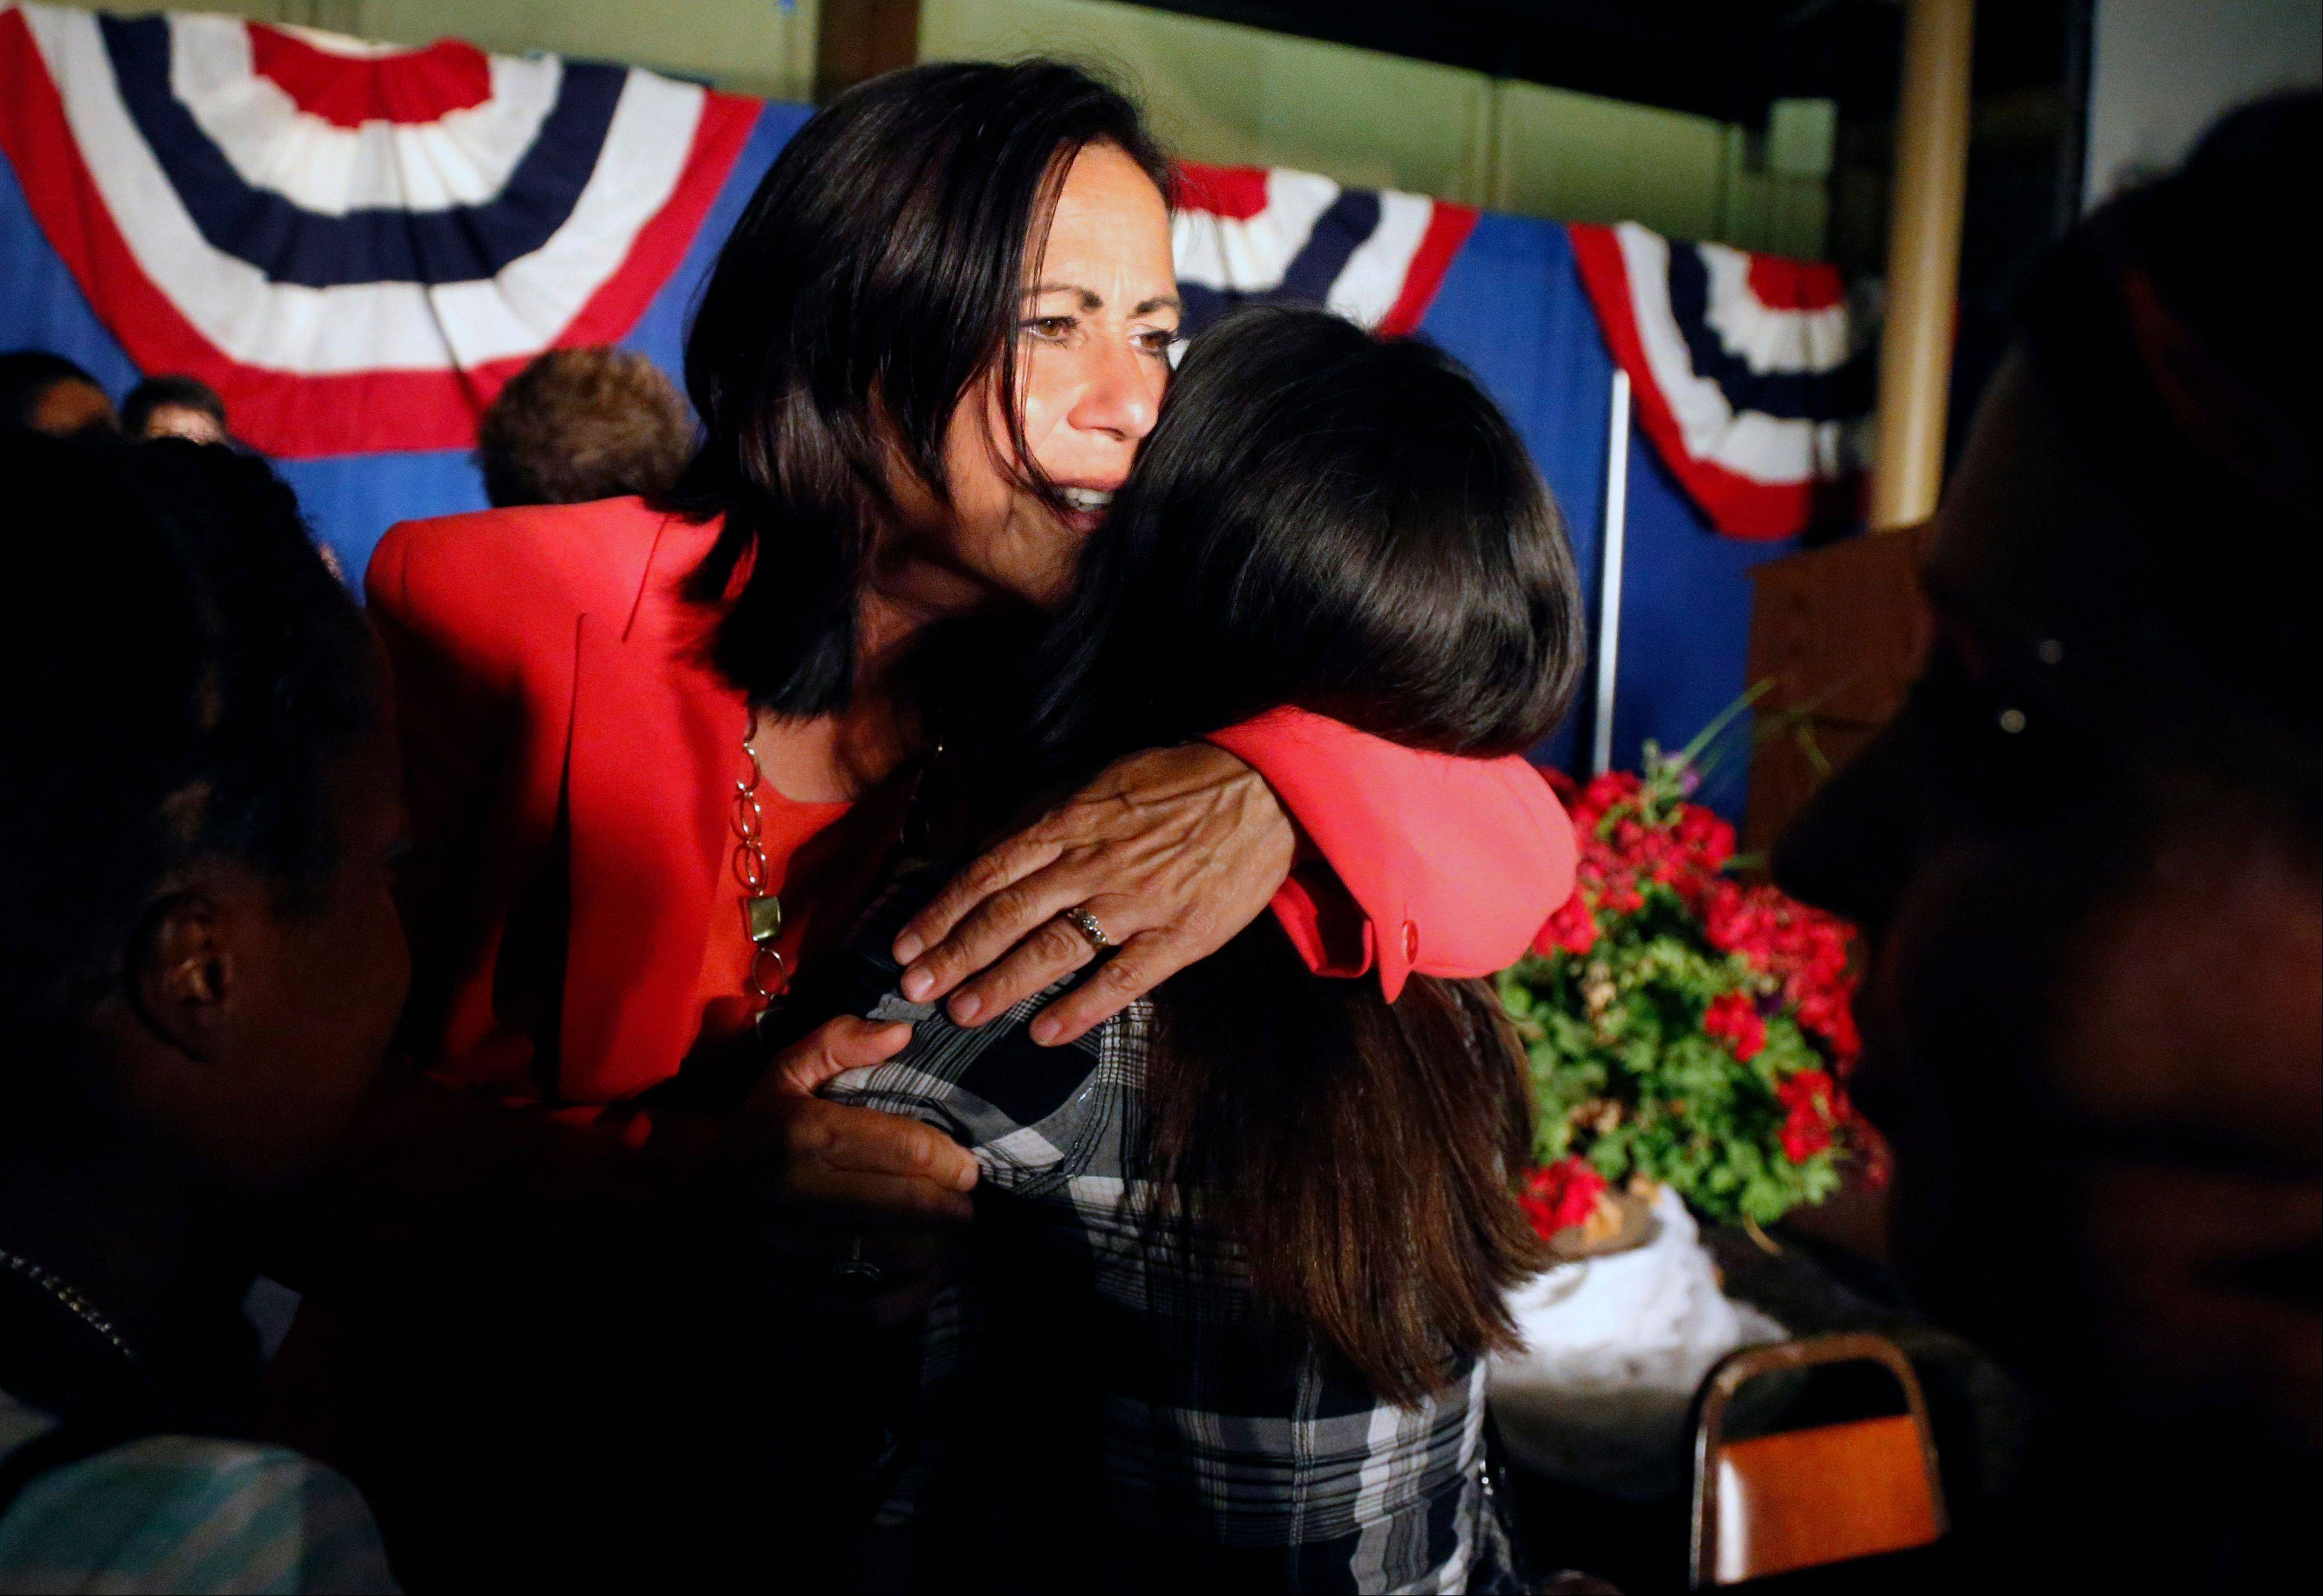 Democratic state Sen. Angela Giron hugs a supporter after giving her concession speech after she lost in a recall vote in Pueblo, Colo., Tuesday Sept. 10, 2013. Two Colorado state lawmakers who backed gun-control measures in the aftermath of the mass shootings in Colorado and Connecticut last year have been ousted in recall elections.